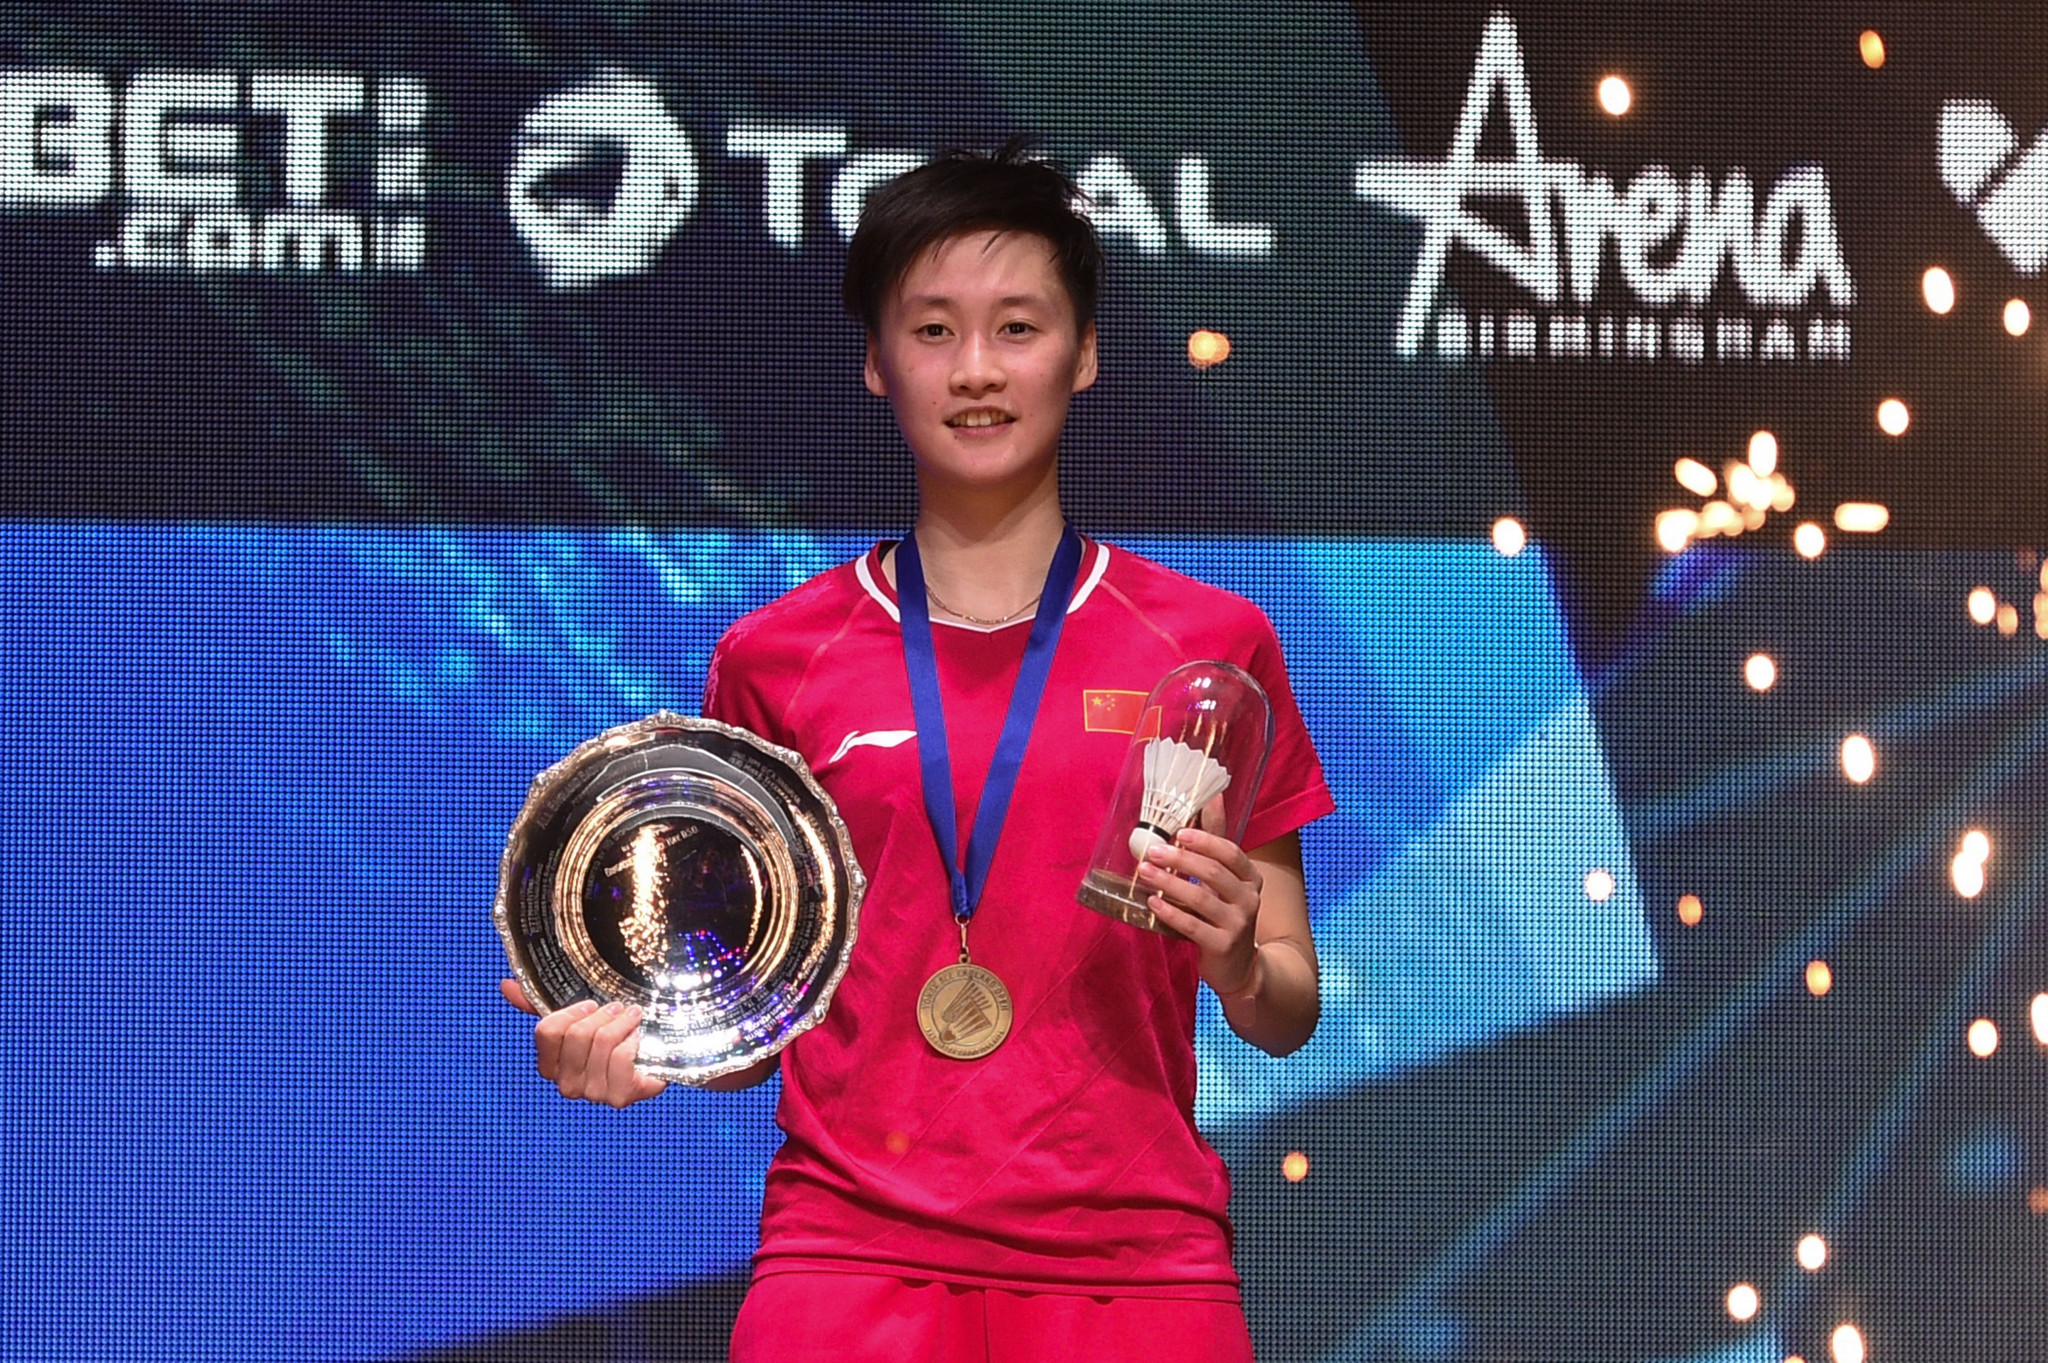 Chen continues strong form with Swiss Open victory in Basel